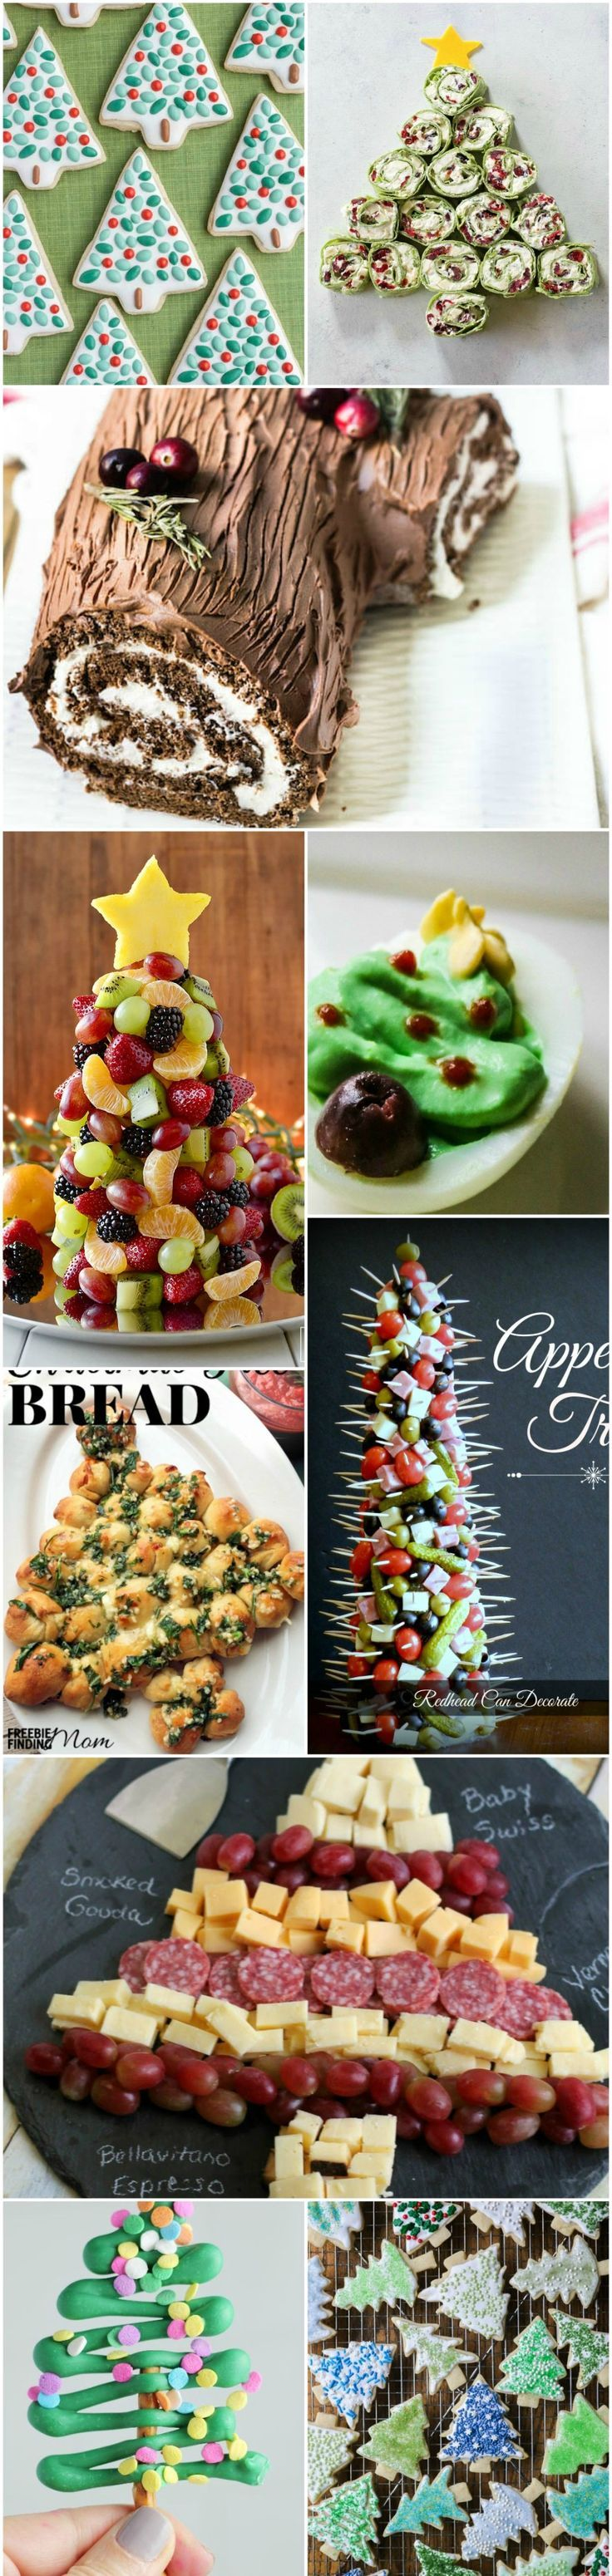 Trees belong at the table for the holidays -- as appetizers, lunch, side dish and dessert! Tree-shaped food is easy and fun for festive gatherings.